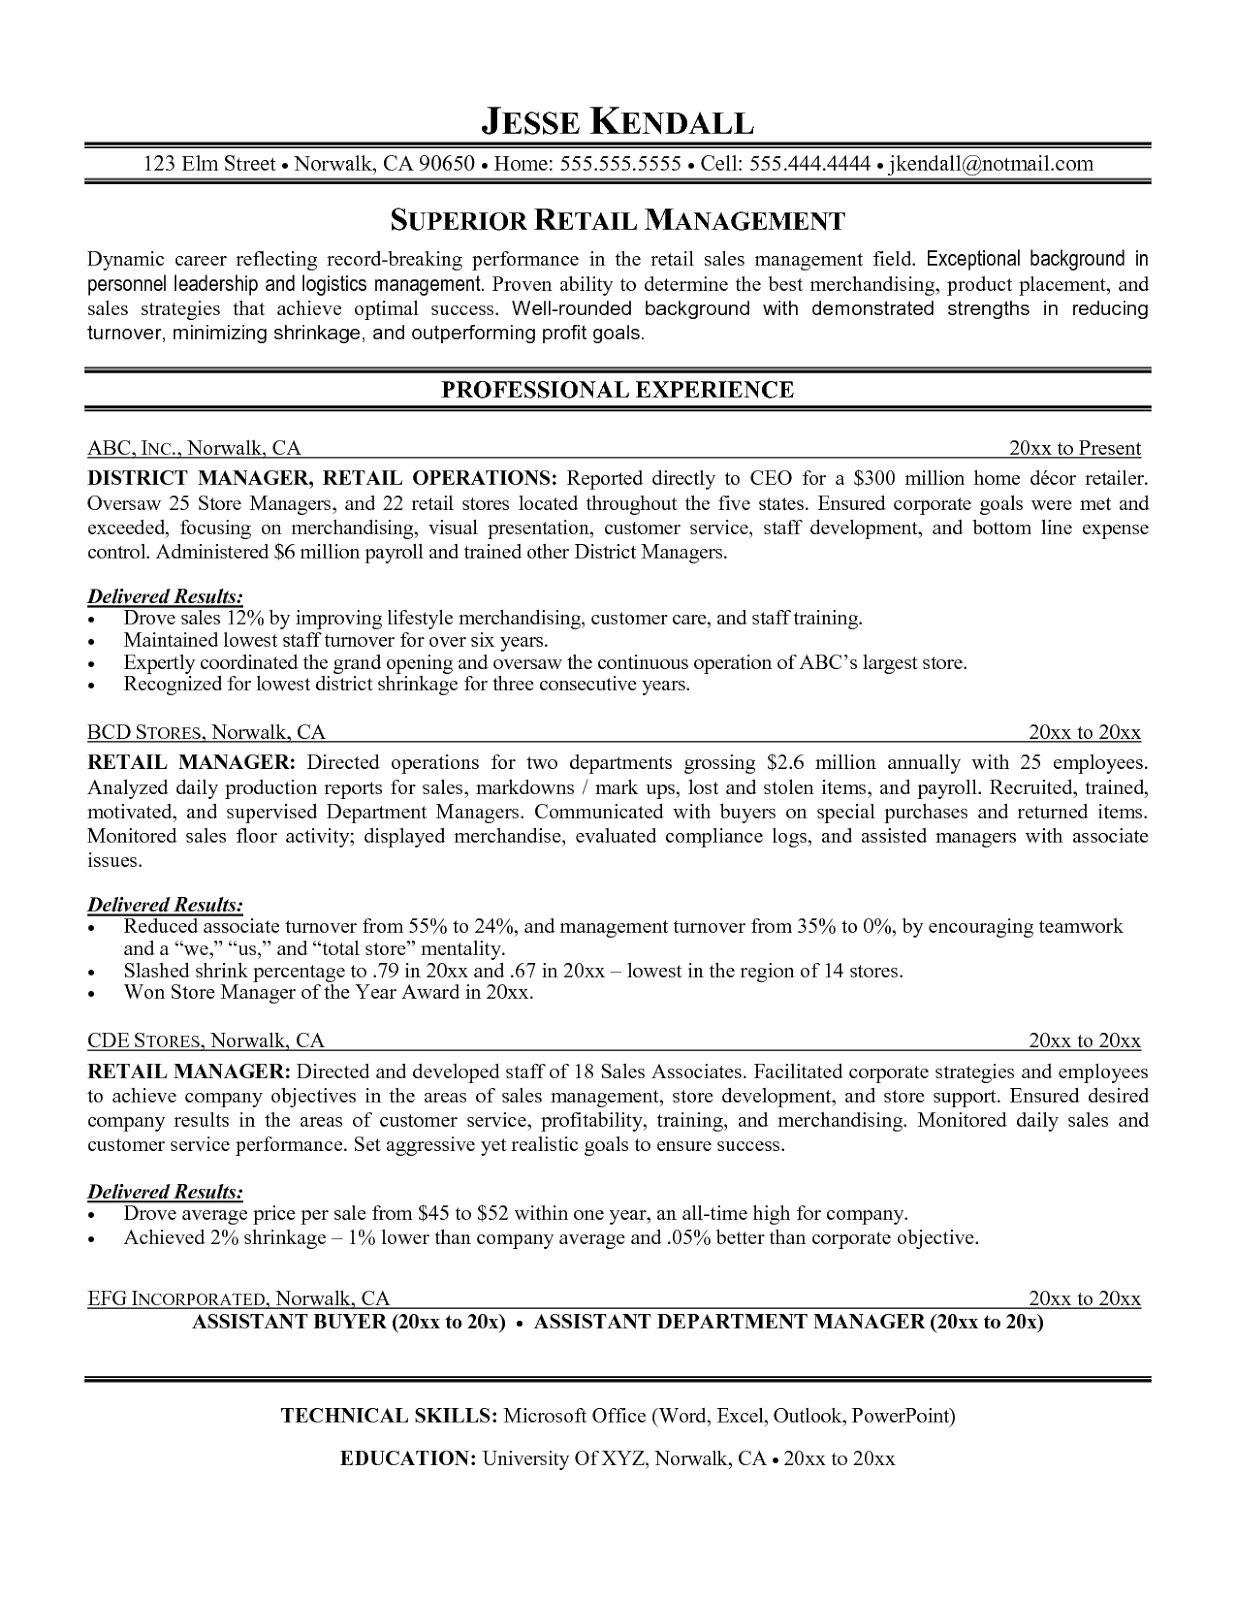 Retail Assistant Buyer Resume Examples. Newsound.co